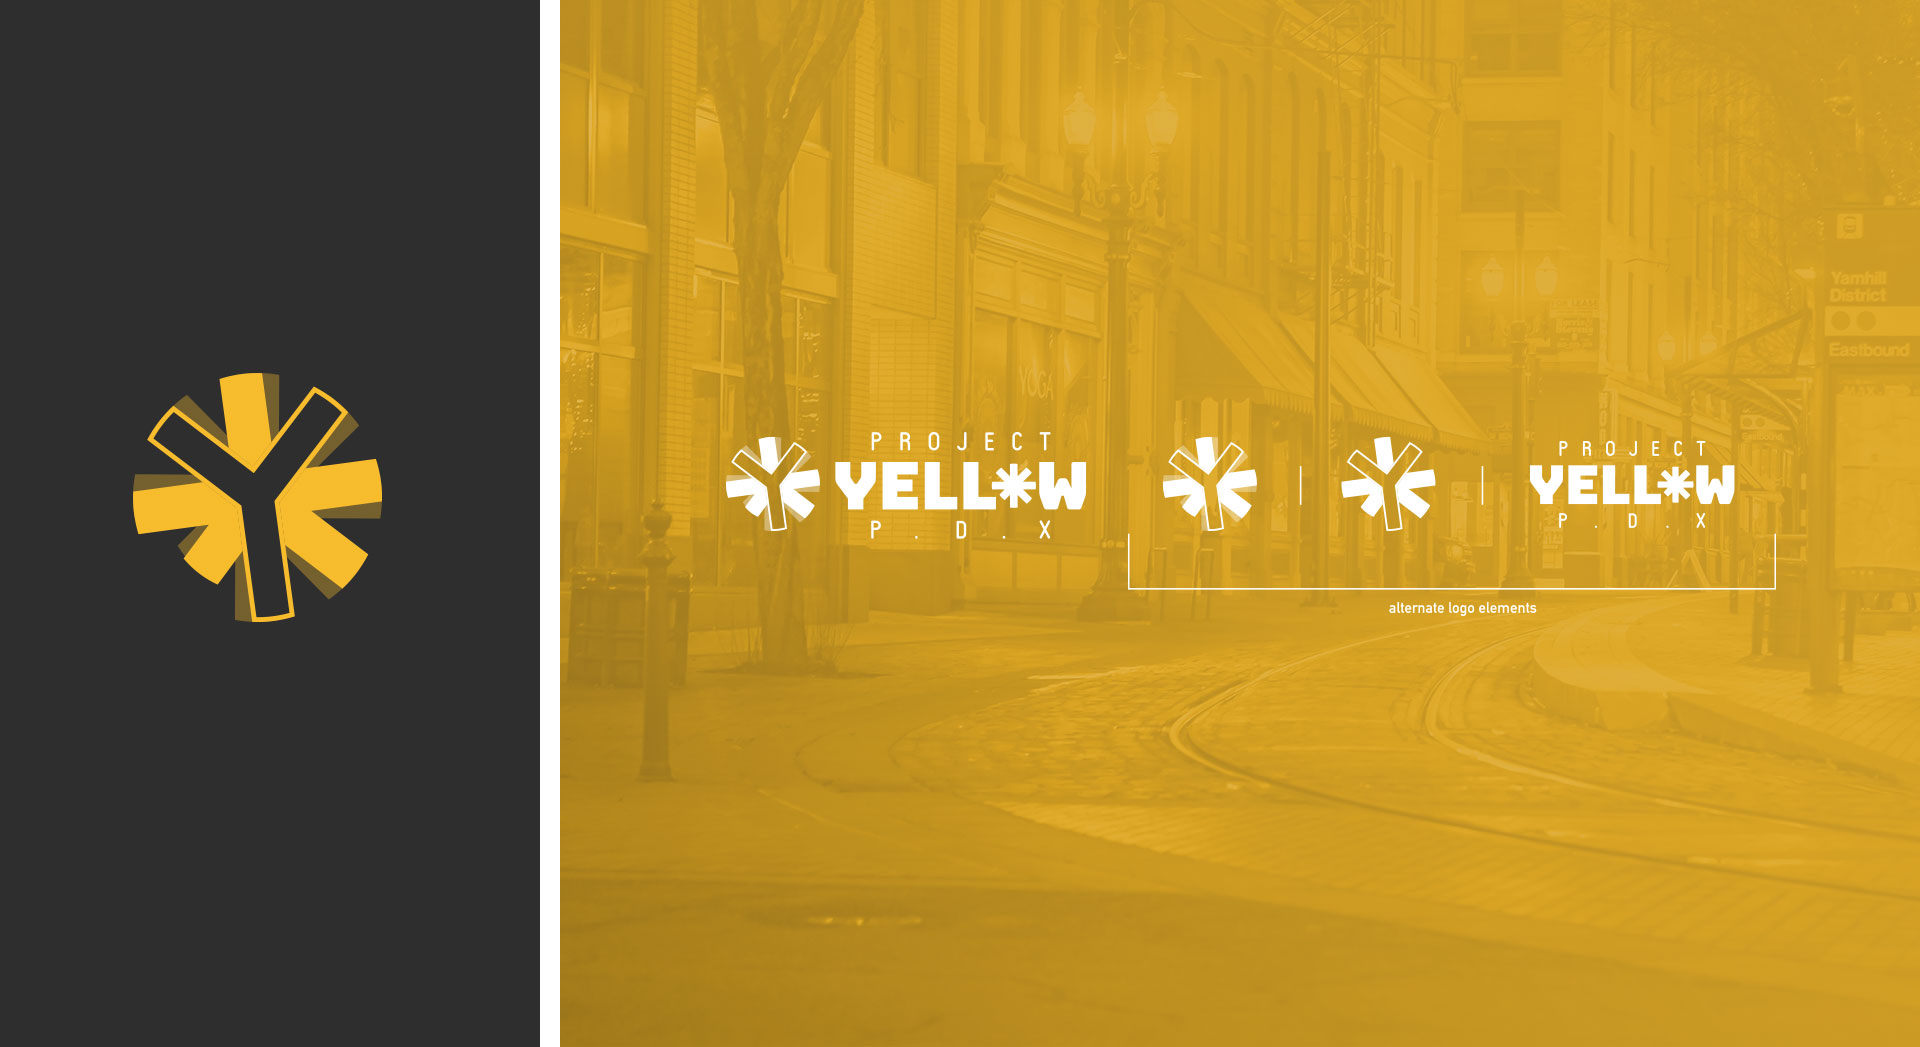 logo branding design yellow textured